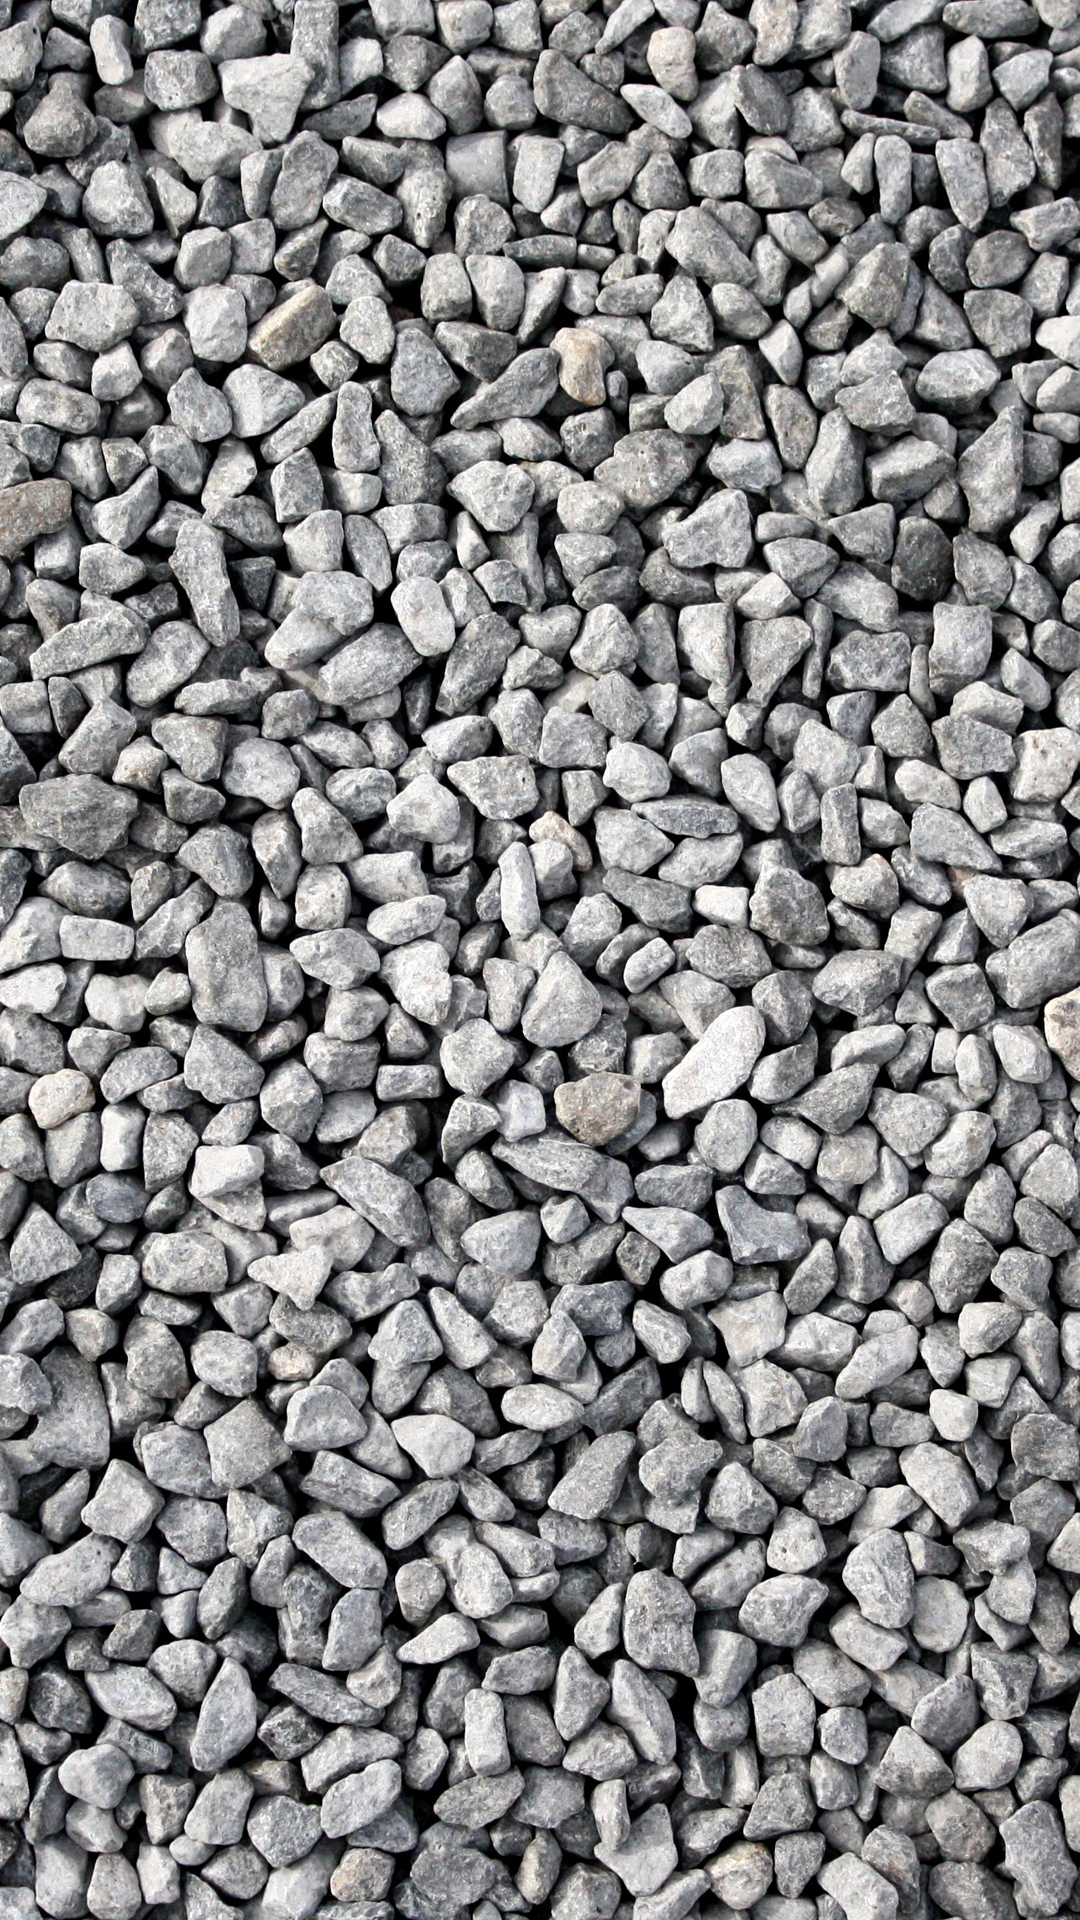 Gravel Rocks Best Htc One Wallpapers Free And Easy To